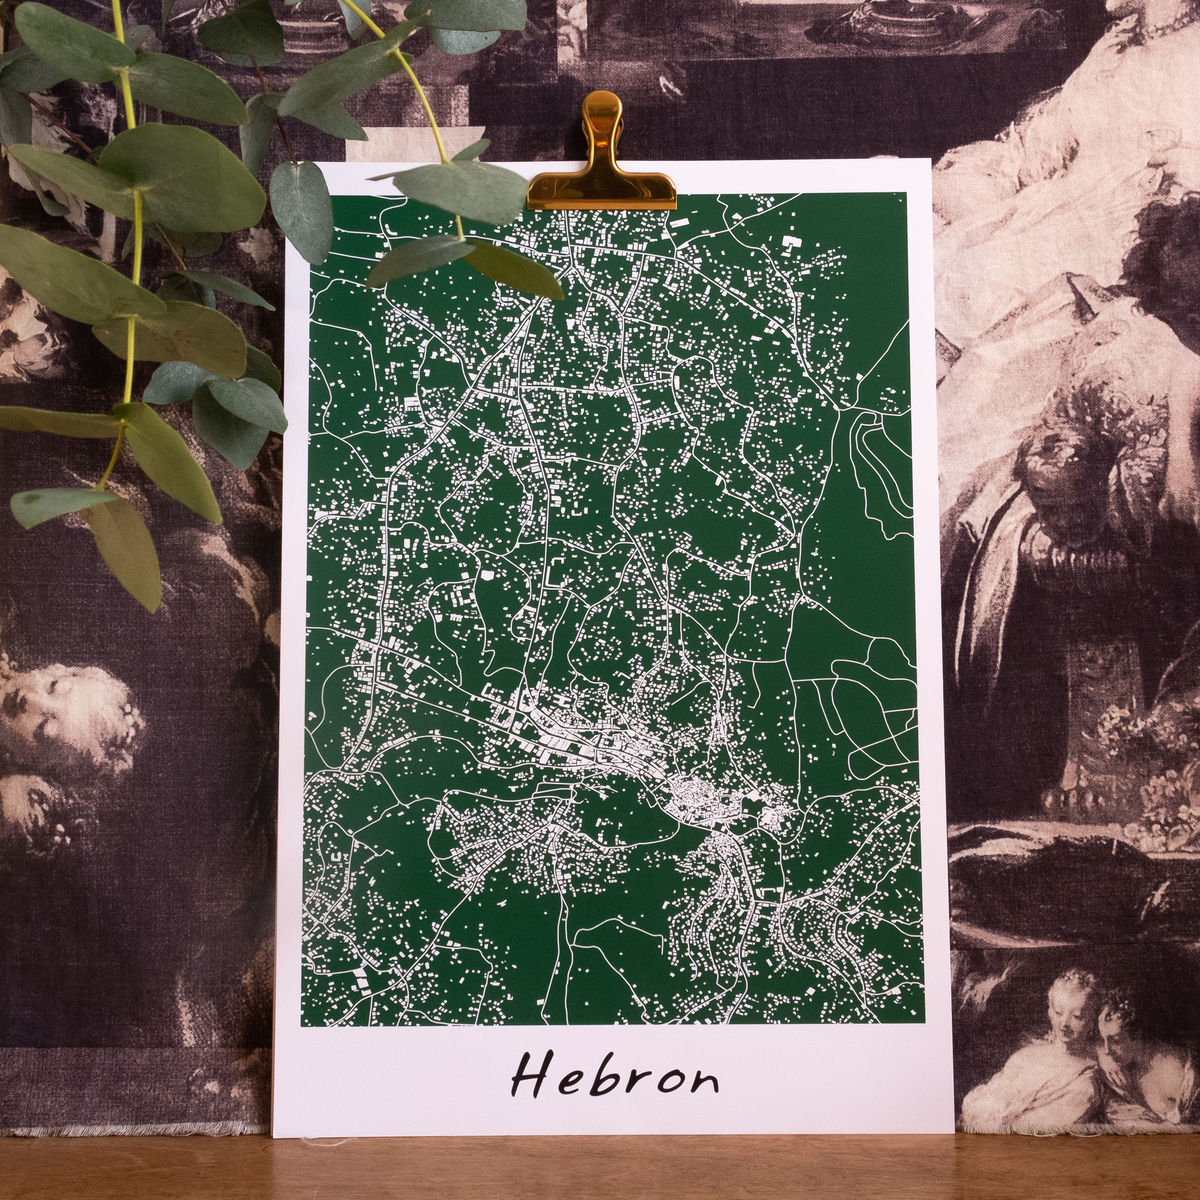 Hebron city map - Poster - Palestinian Cities collection - by NOL Design Studio  - product image